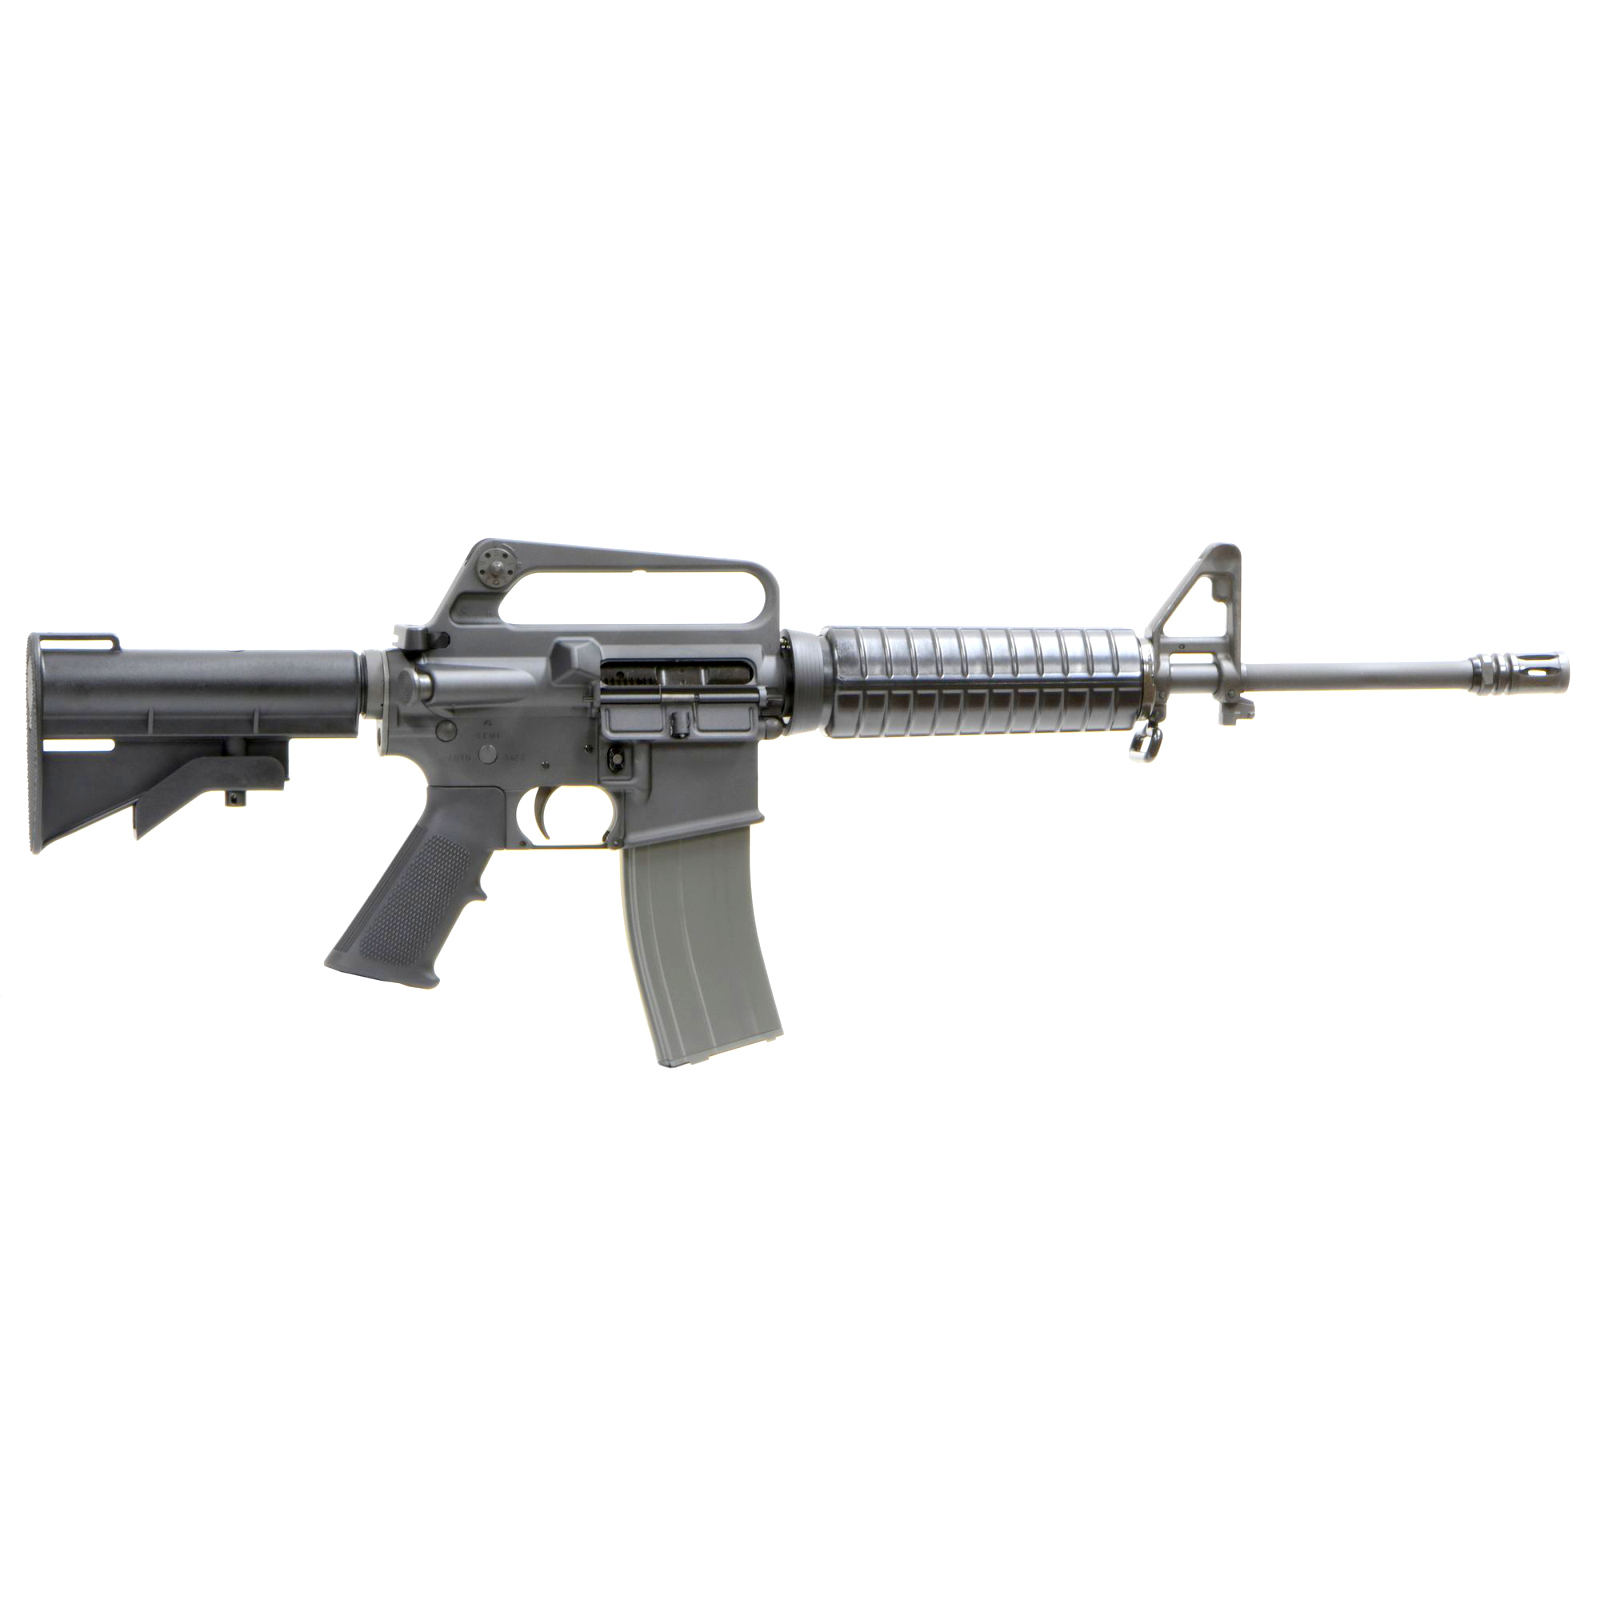 【限定品】 CAR ガスブローバック M16A2 Carbine Mod.723 Early GBBR (Limited Edition) *日本仕様 【品番:CAR-GBB-M723E】